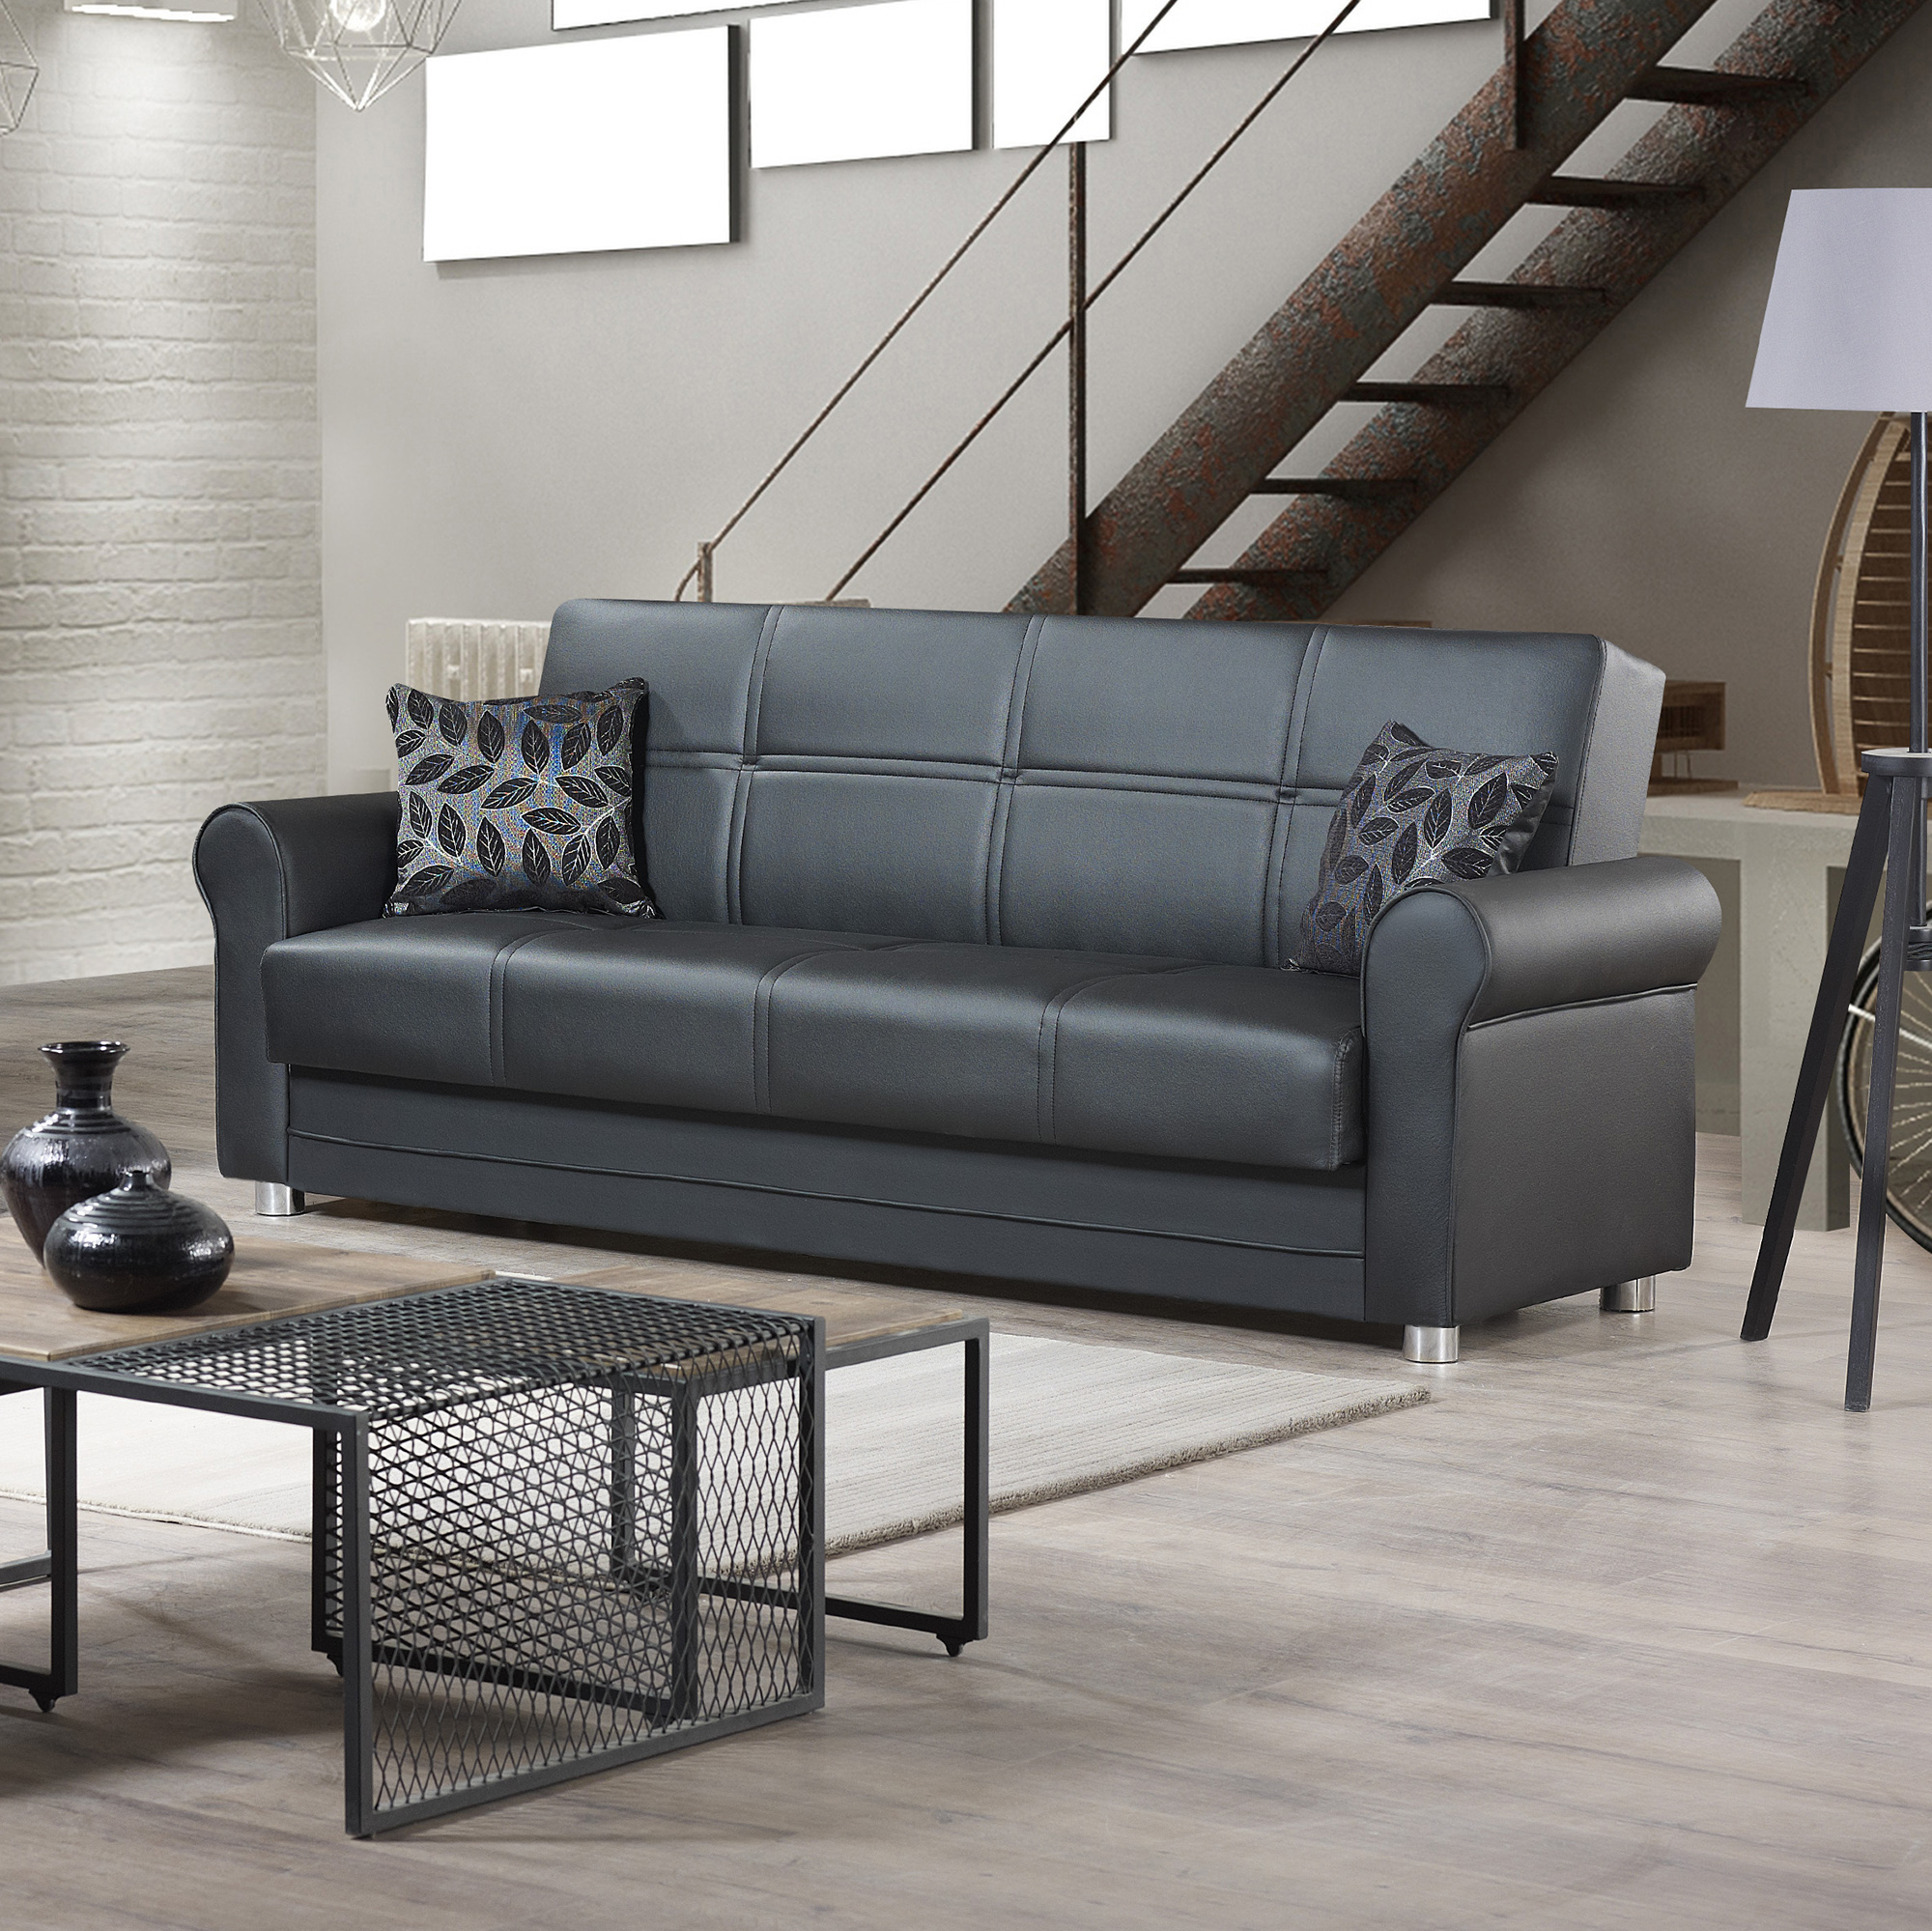 Ottomanson Avalon Sofa Bed With Storage In Leather With Sofa With Chairs (View 2 of 15)